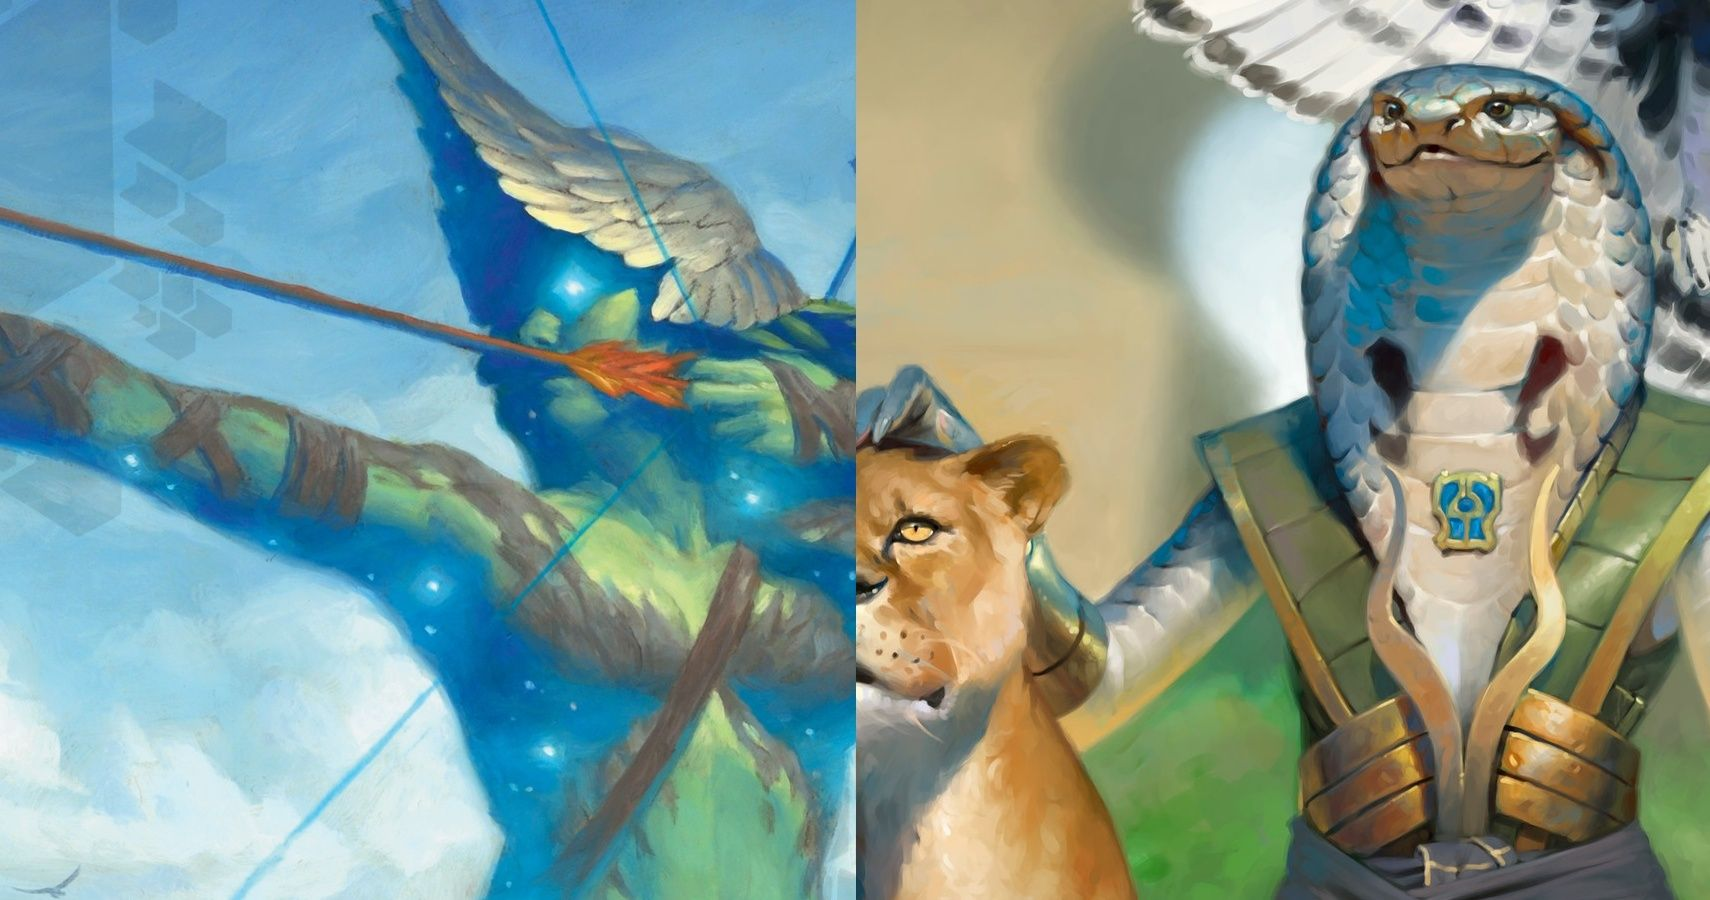 Magic The Gathering The 10 Best Green Creature Cards For Commander, Ranked